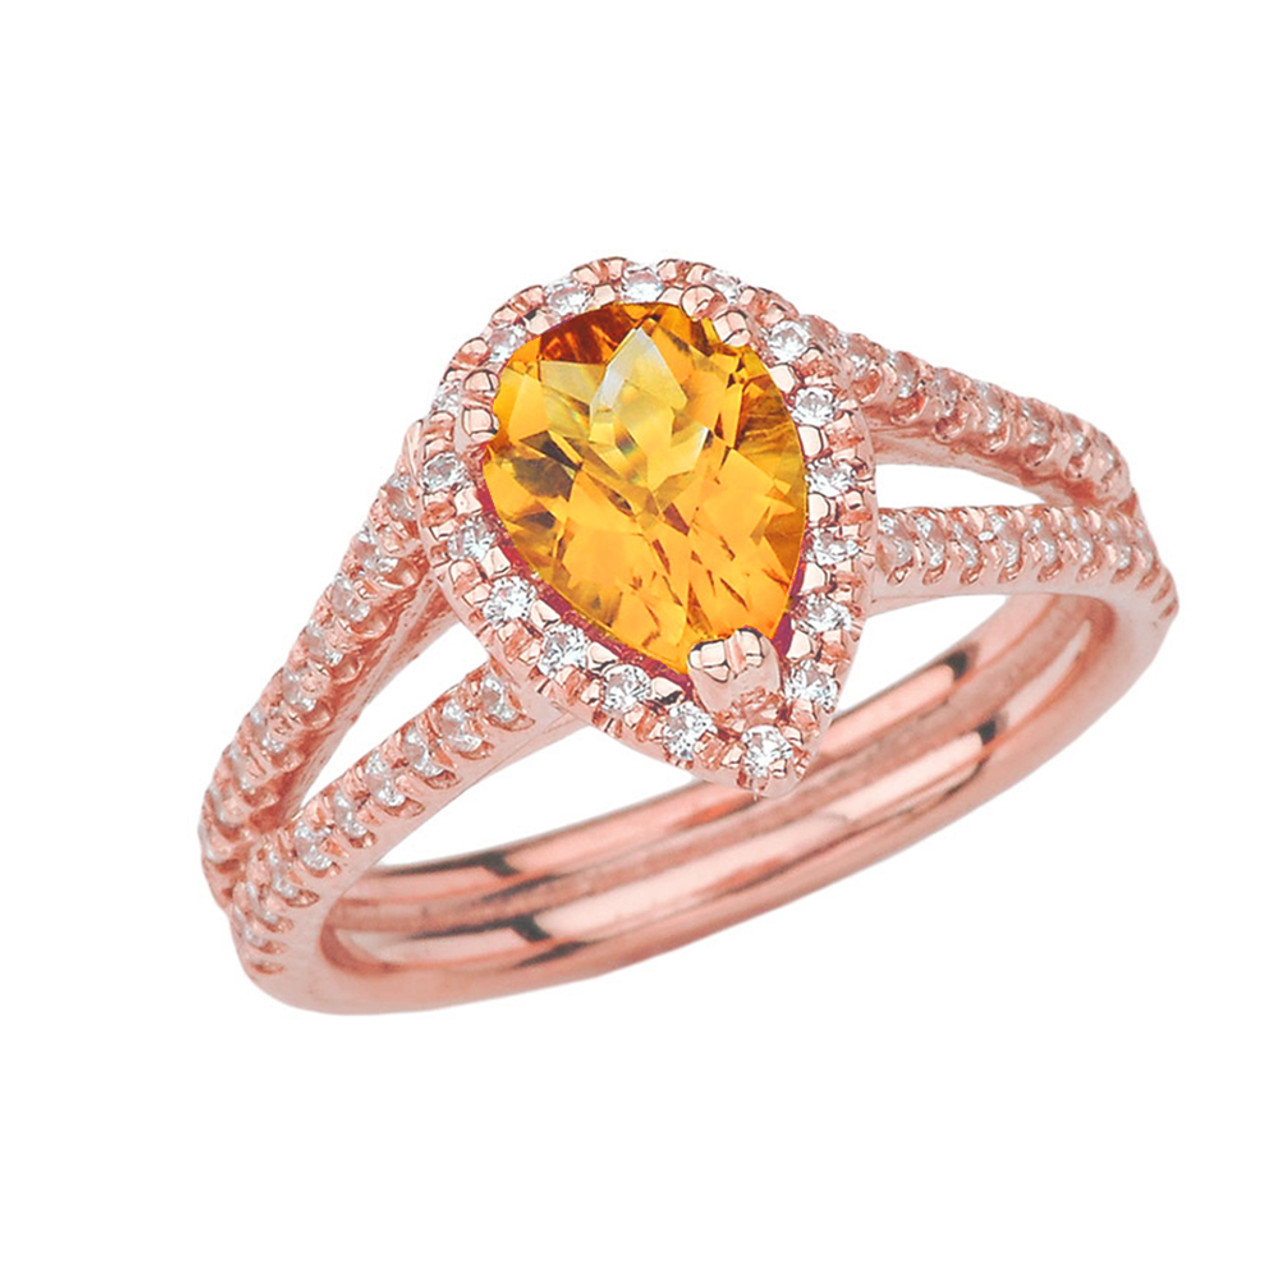 aa3543f246884 Double Raw Halo Pear Shape Genuine Checkerboard Citrine Ring in Rose Gold